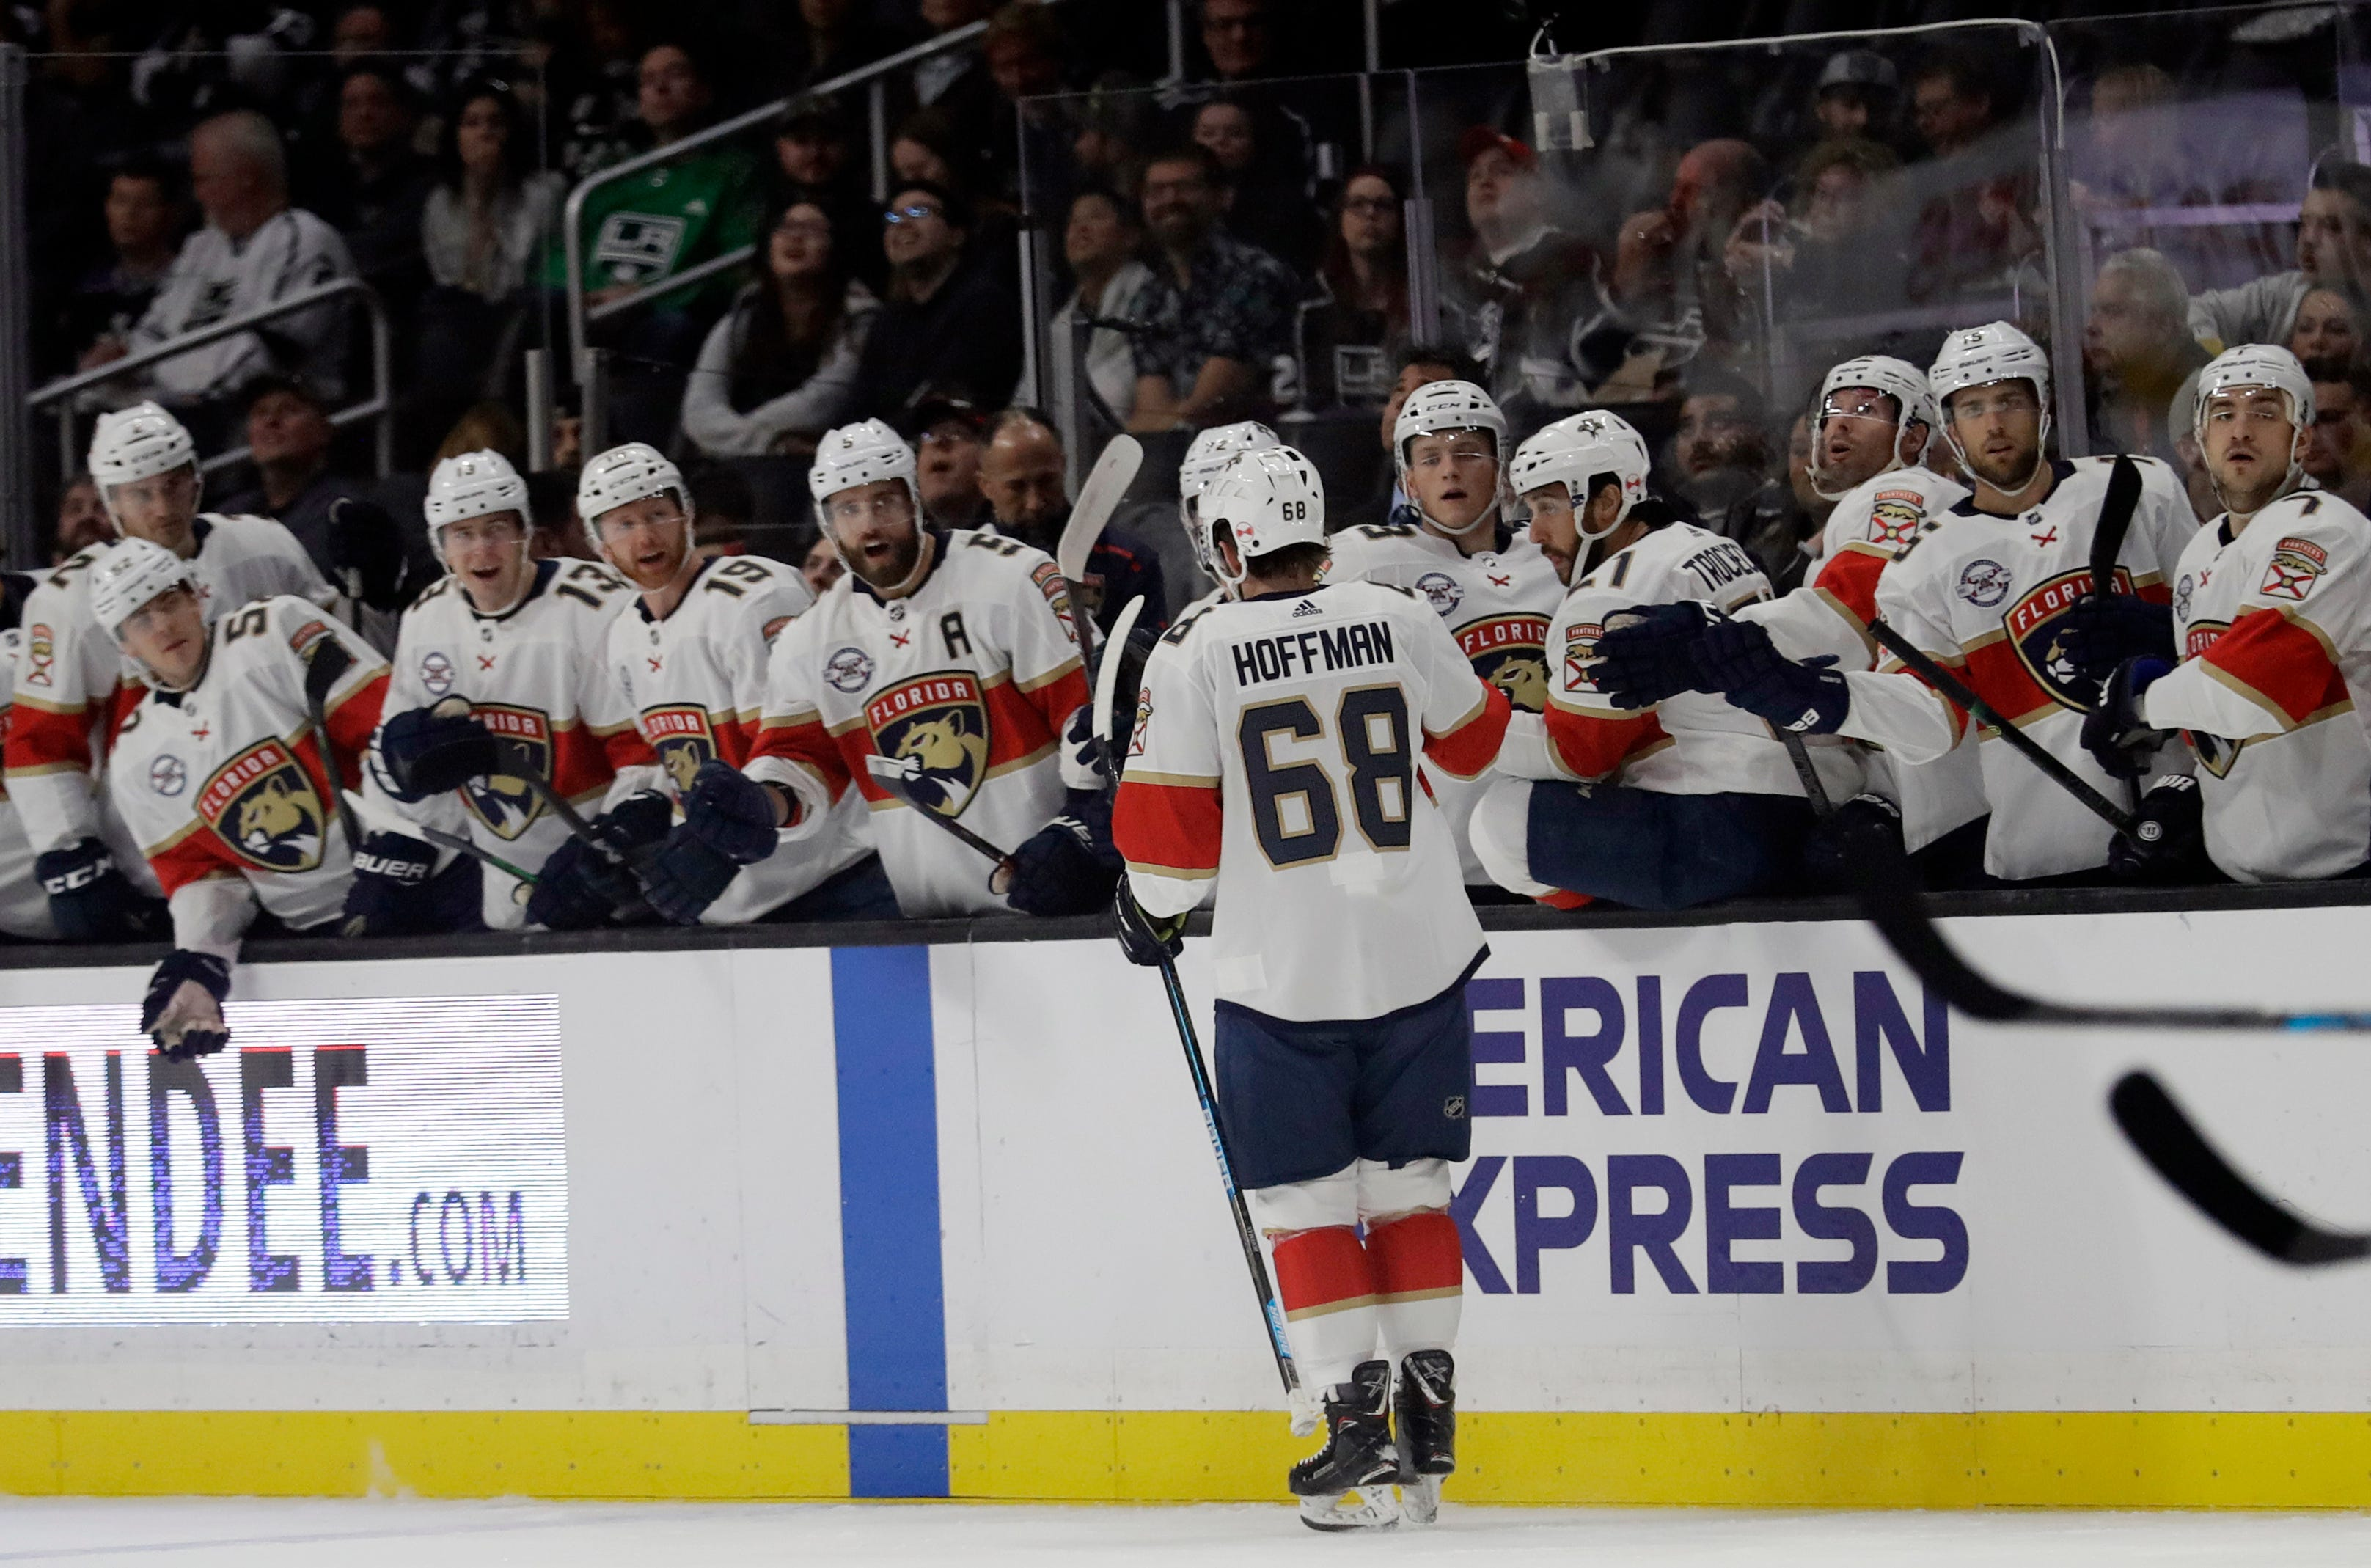 Huberdeau scores late, Panthers edge Kings 4-3